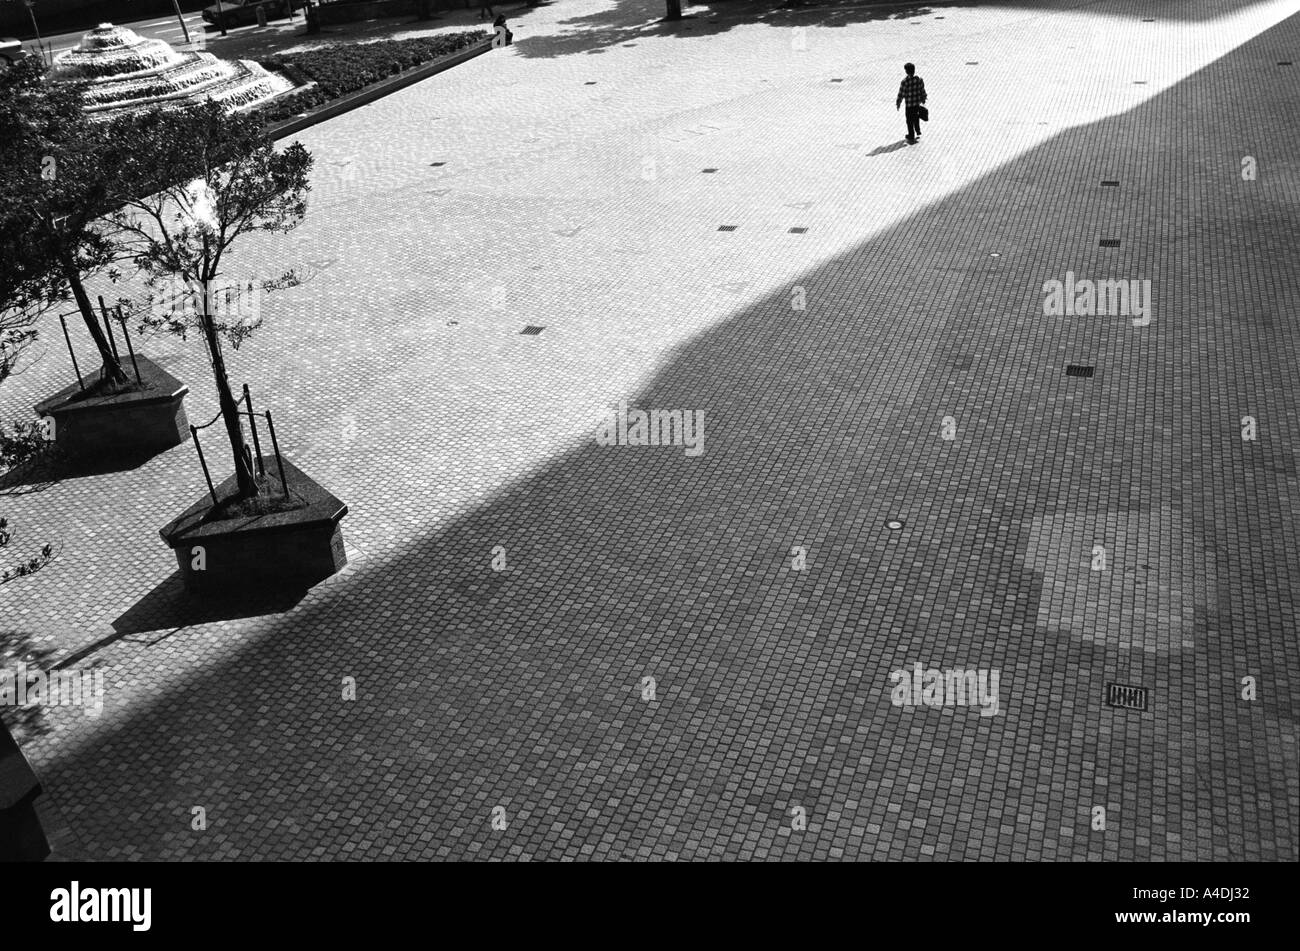 A man walking across an empty space. Hong Kong, Peoples' Republic of China, HKSAR - Stock Image